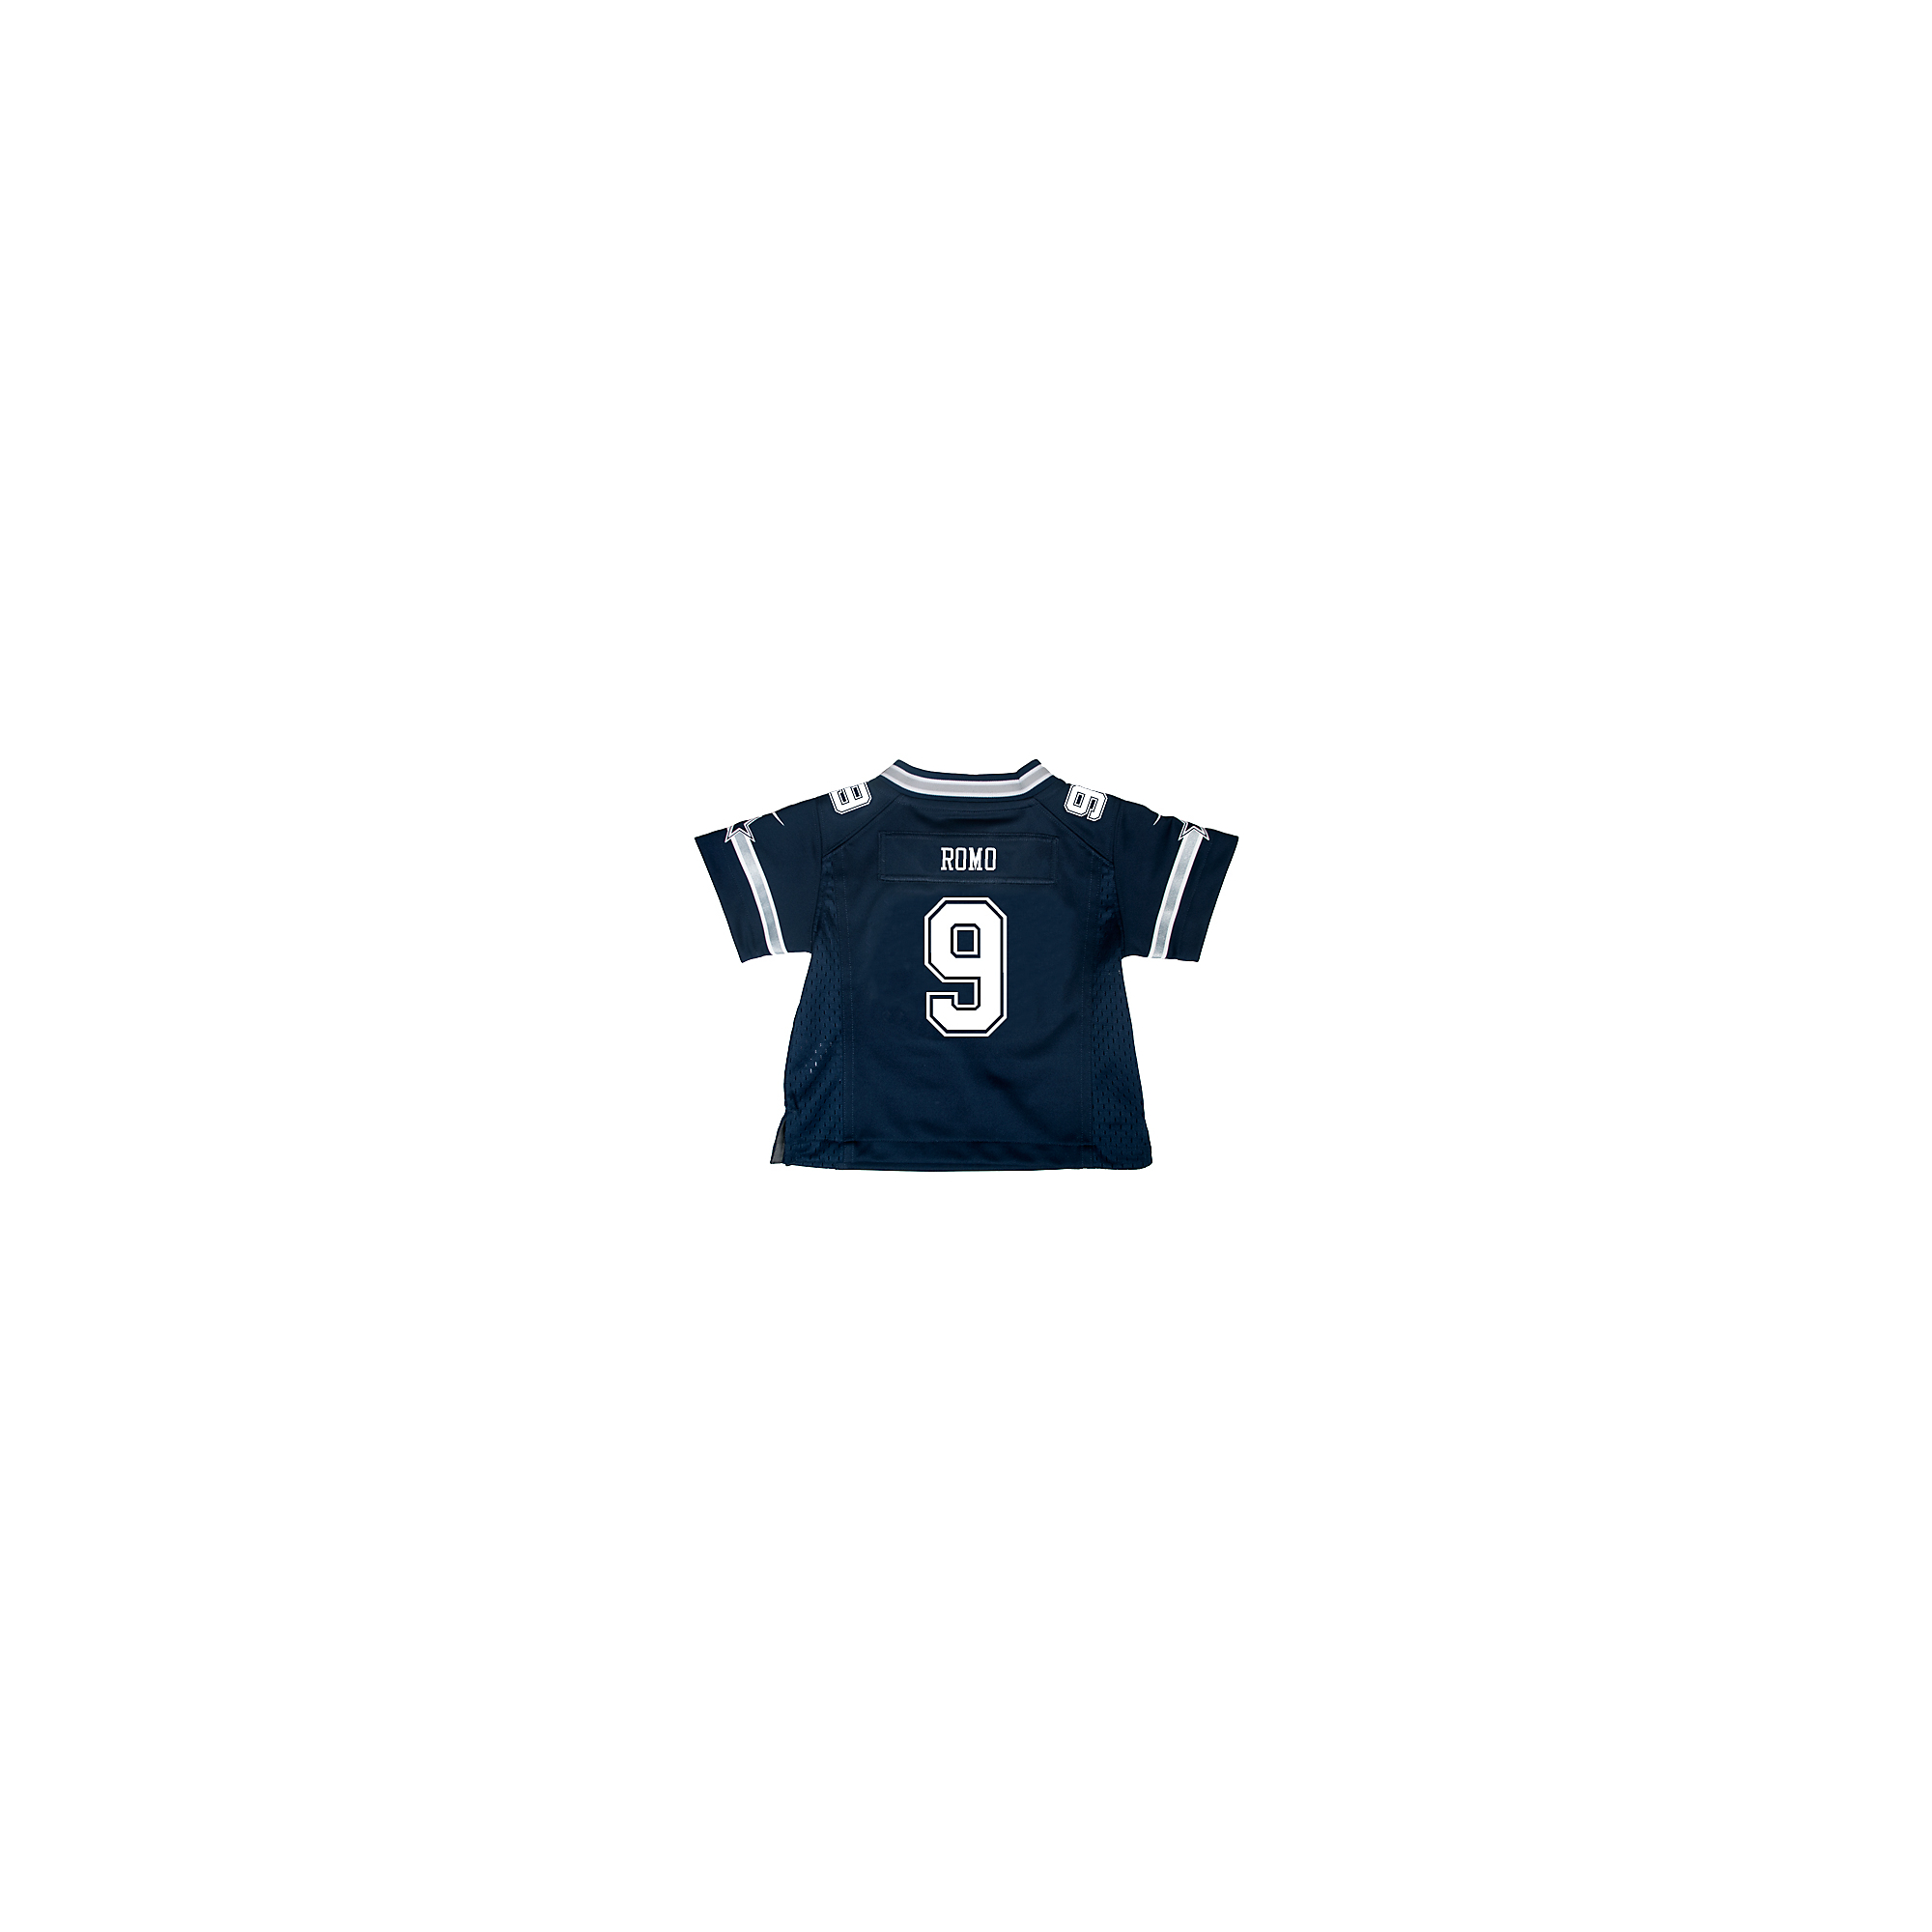 super popular 331b4 f3cc0 Dallas Cowboys Infant Tony Romo #9 Nike Game Replica Jersey ...